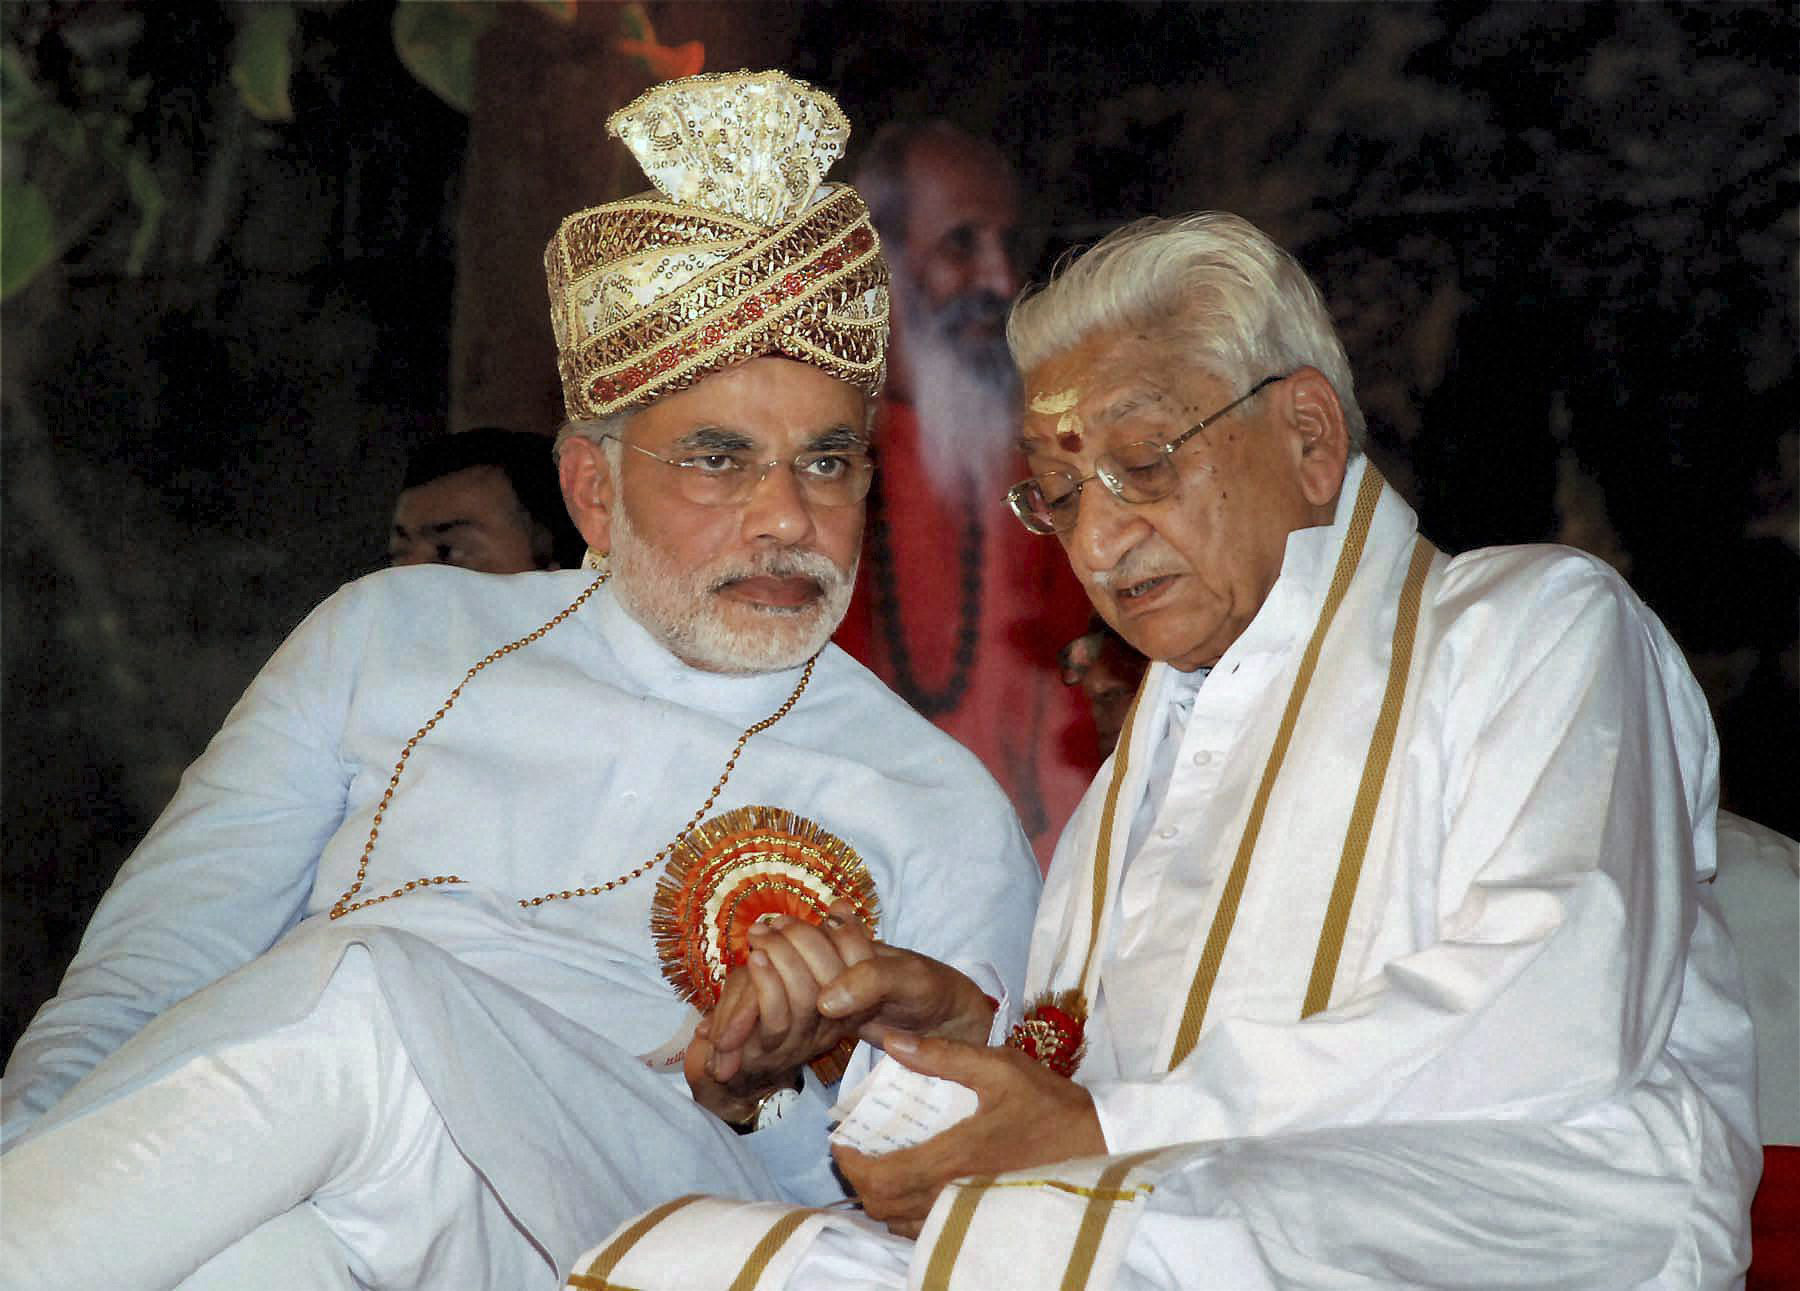 SO WHO SHOULD WE TOLERATE NOW? File photo from 2010 of the late VHP president Ashok Singhal, who died last week, with Narendra Modi. Credit: PTI